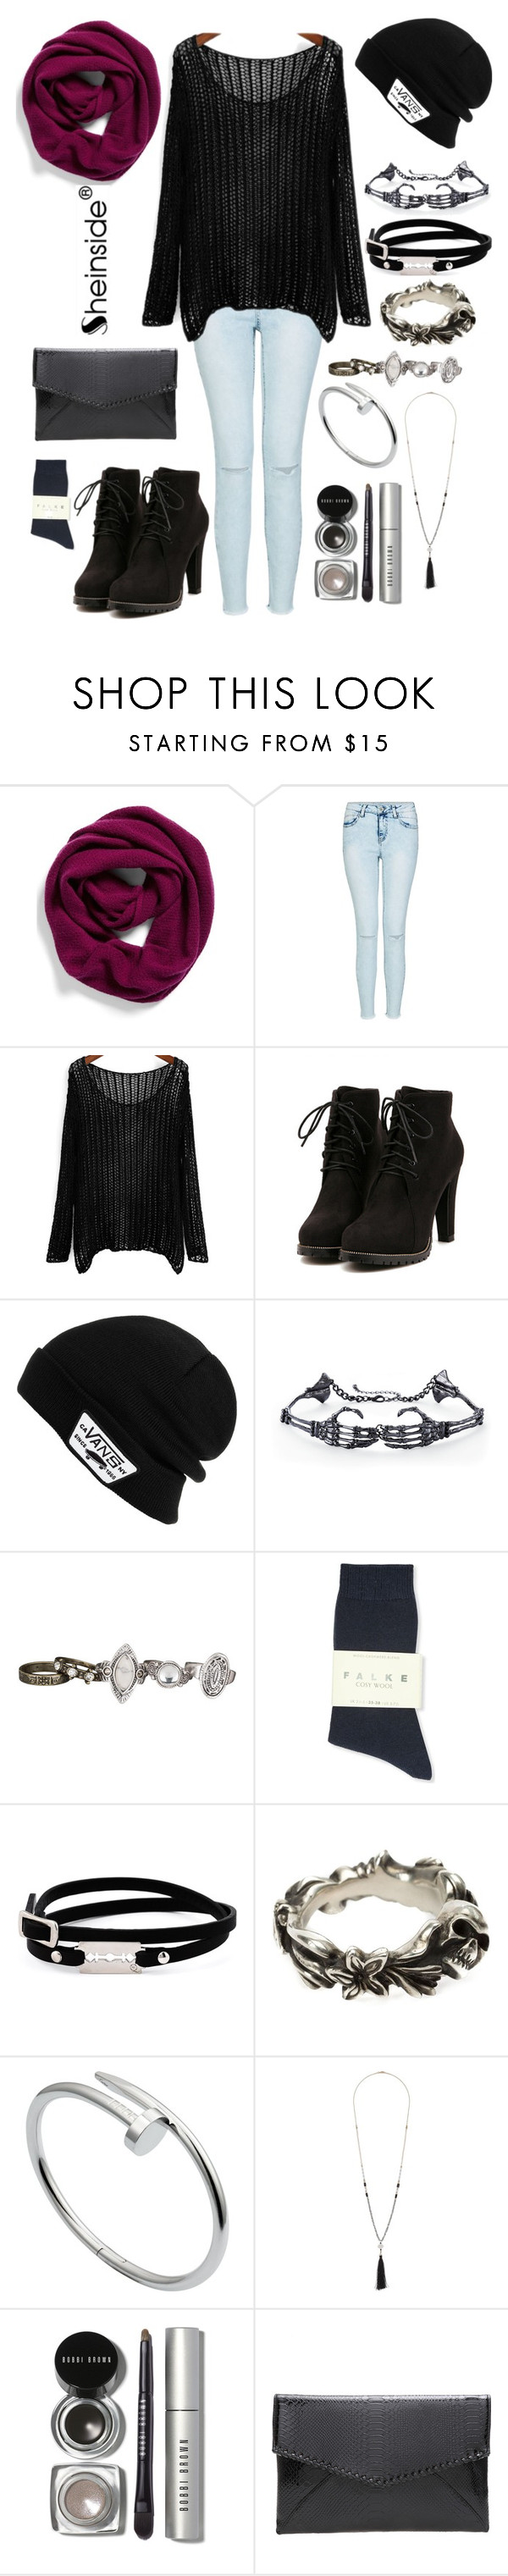 """#111"" by firestars ❤ liked on Polyvore featuring Halogen, Vans, maurices, Falke, McQ by Alexander McQueen, Werkstatt:München, Cartier, Wallis, Bobbi Brown Cosmetics and Sheinside"